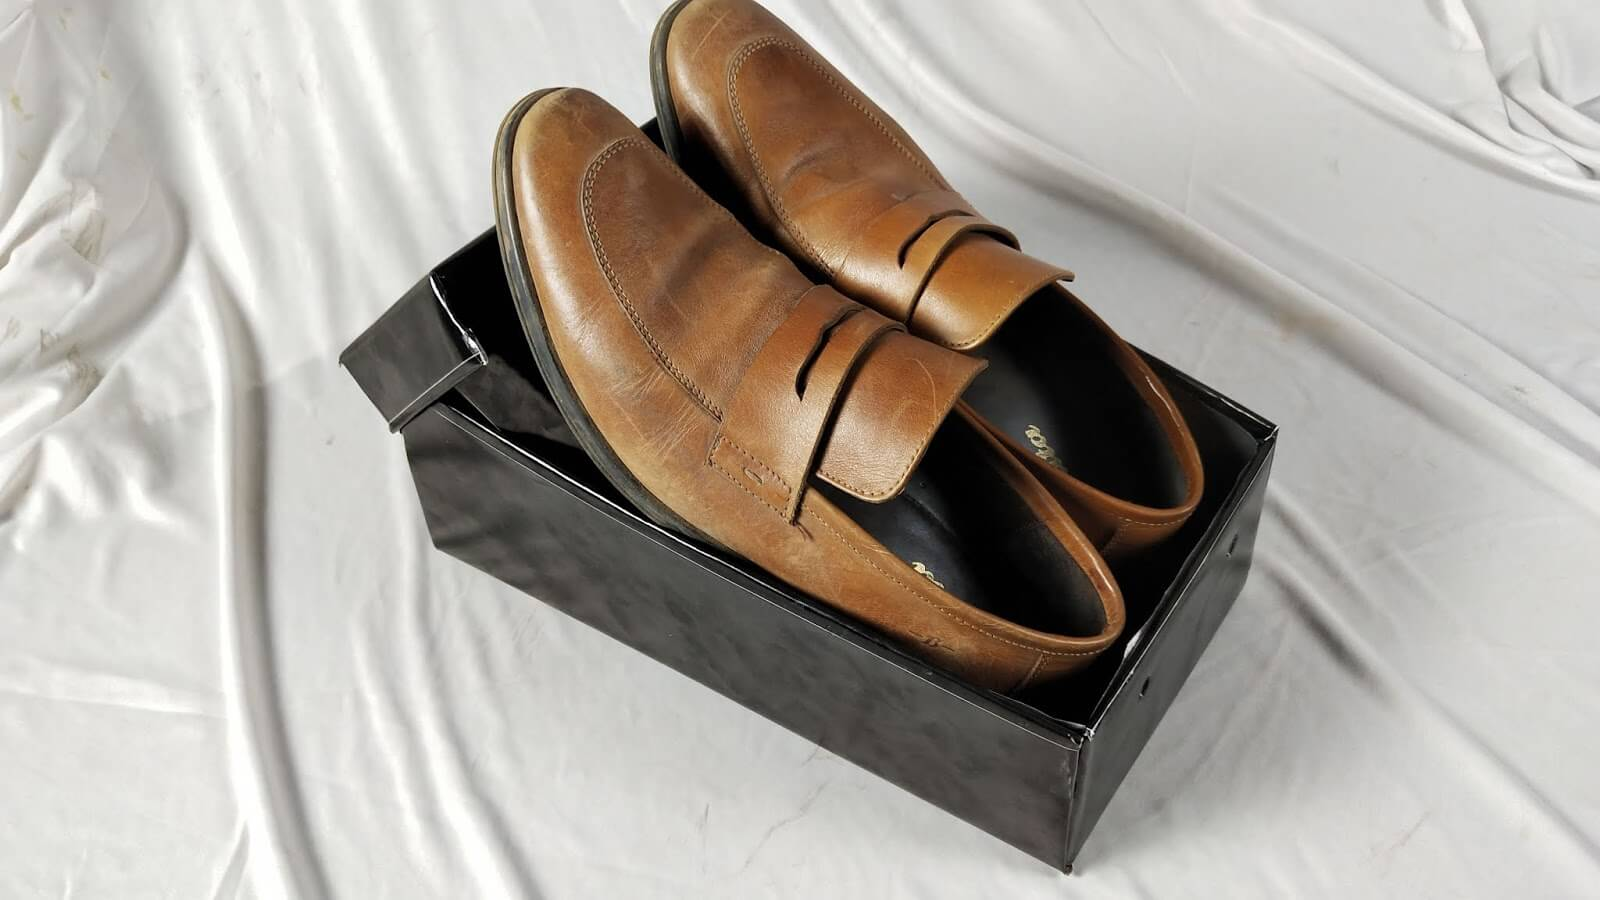 brown shoes in a modifiable display shoe box